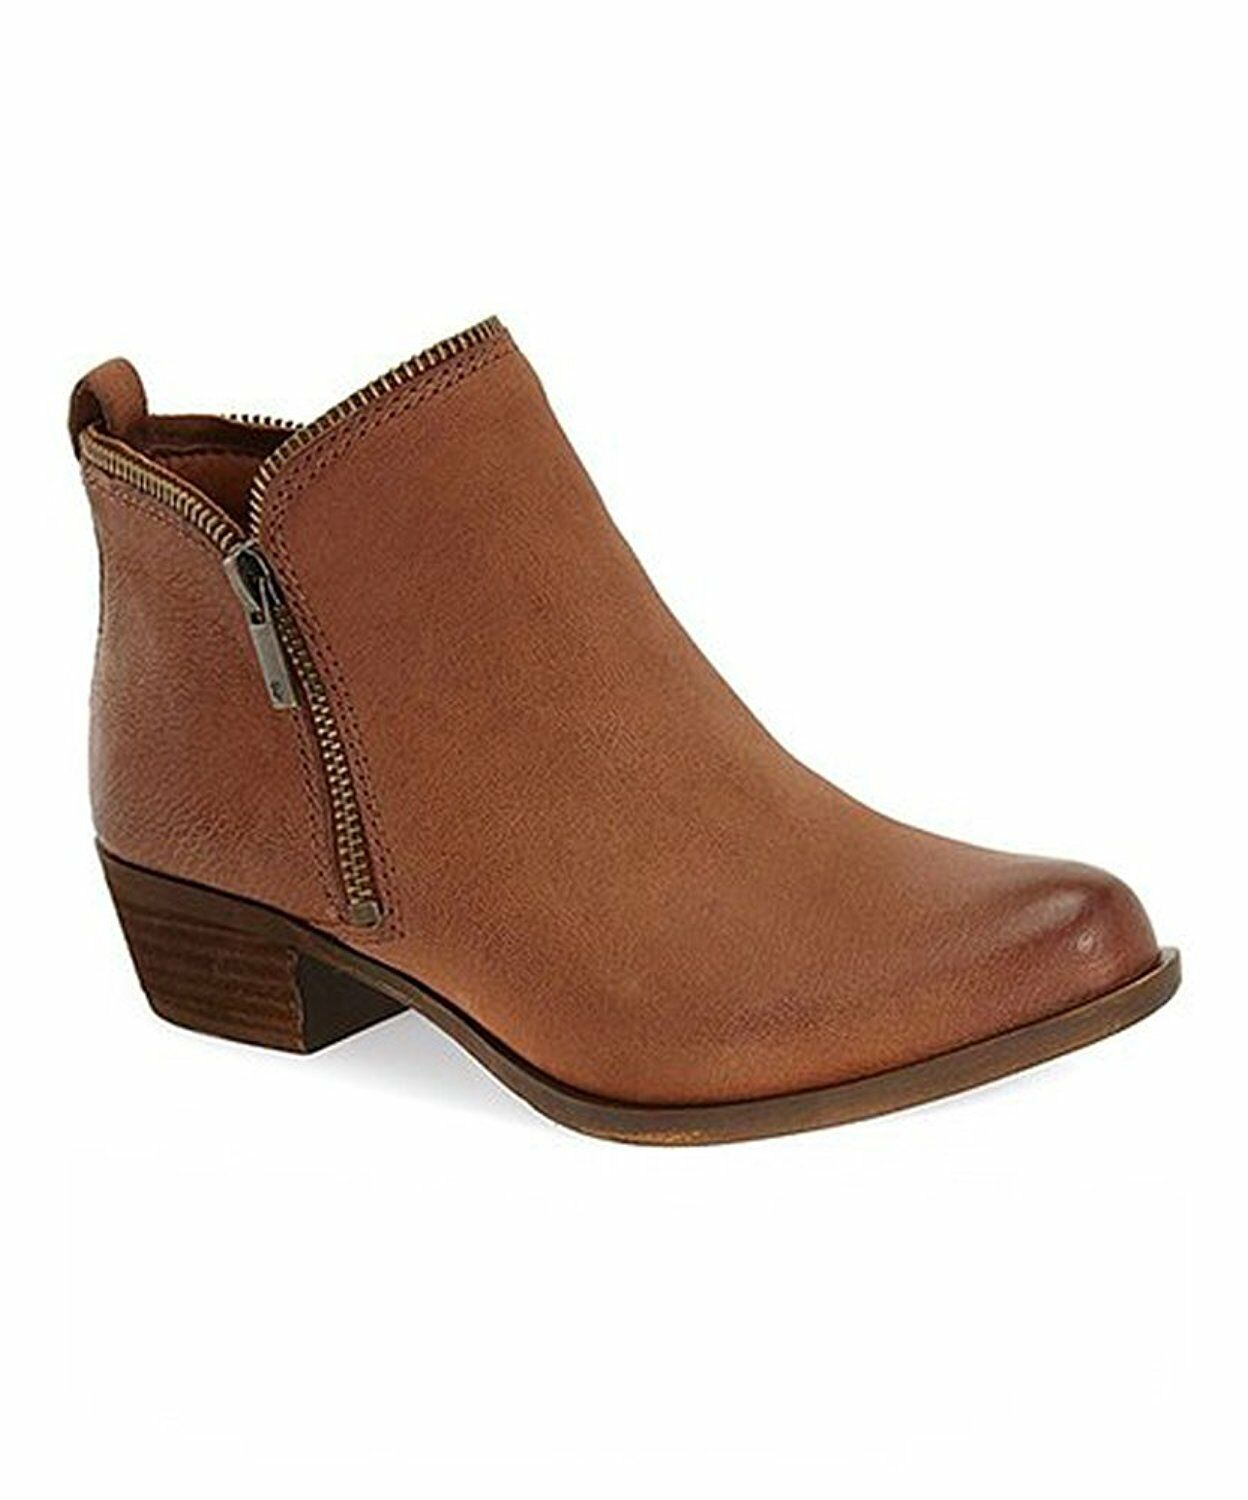 Lucky Brand Women's Bartalino Dual Side Zip Leather Ankle Boots Whiskey Brown